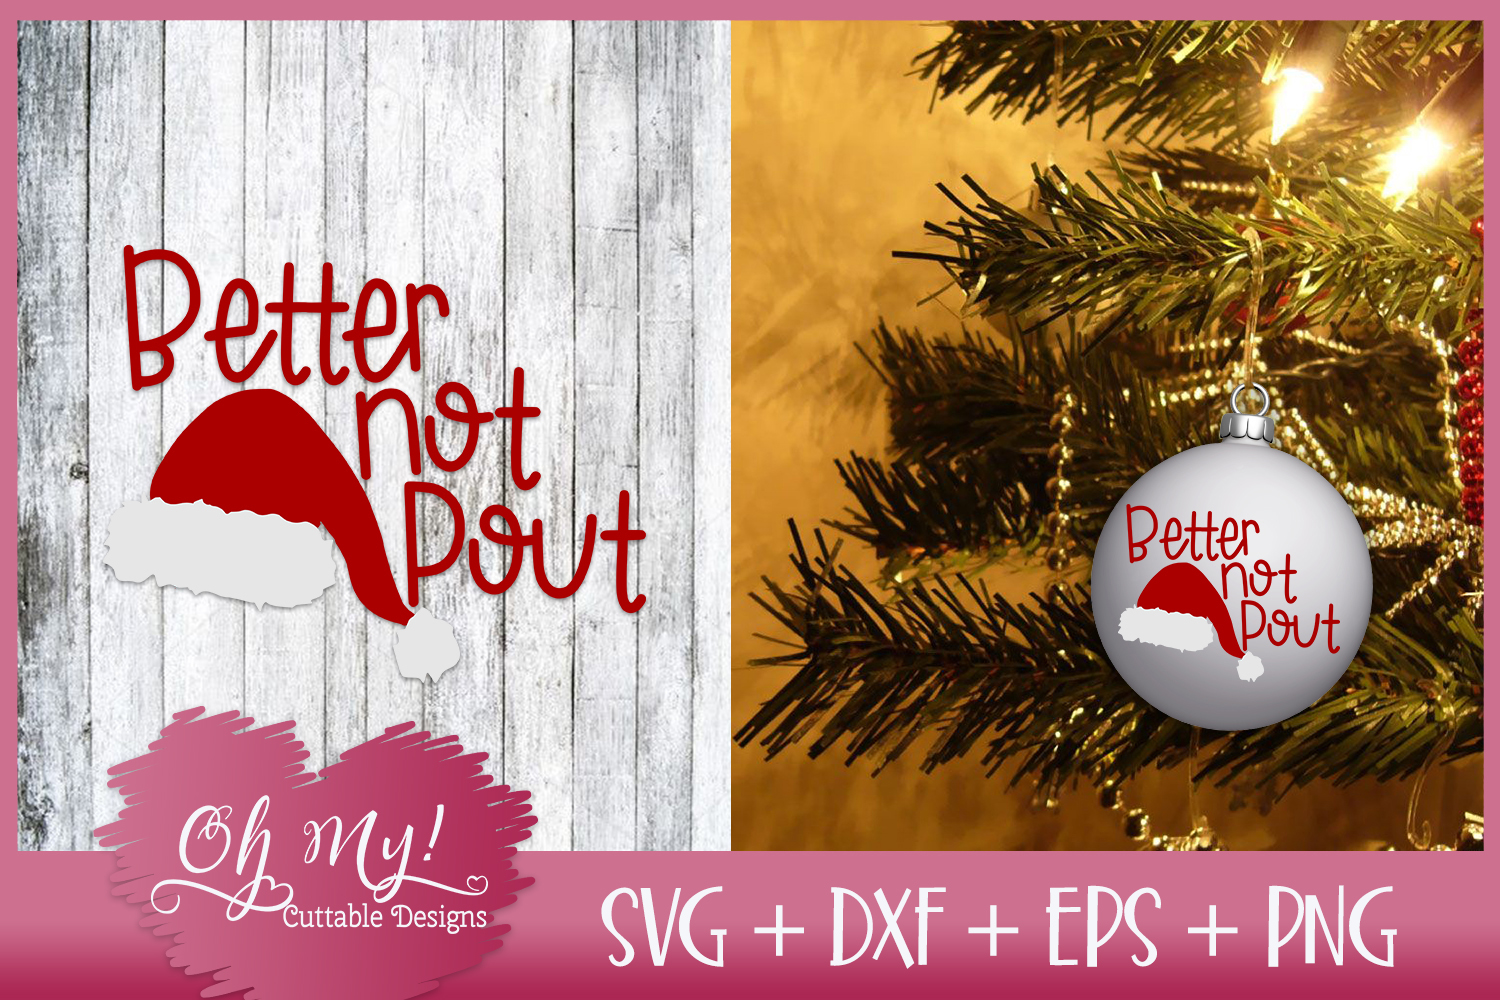 Better Not Pout - SVG EPS DXF PNG Cutting File example image 1